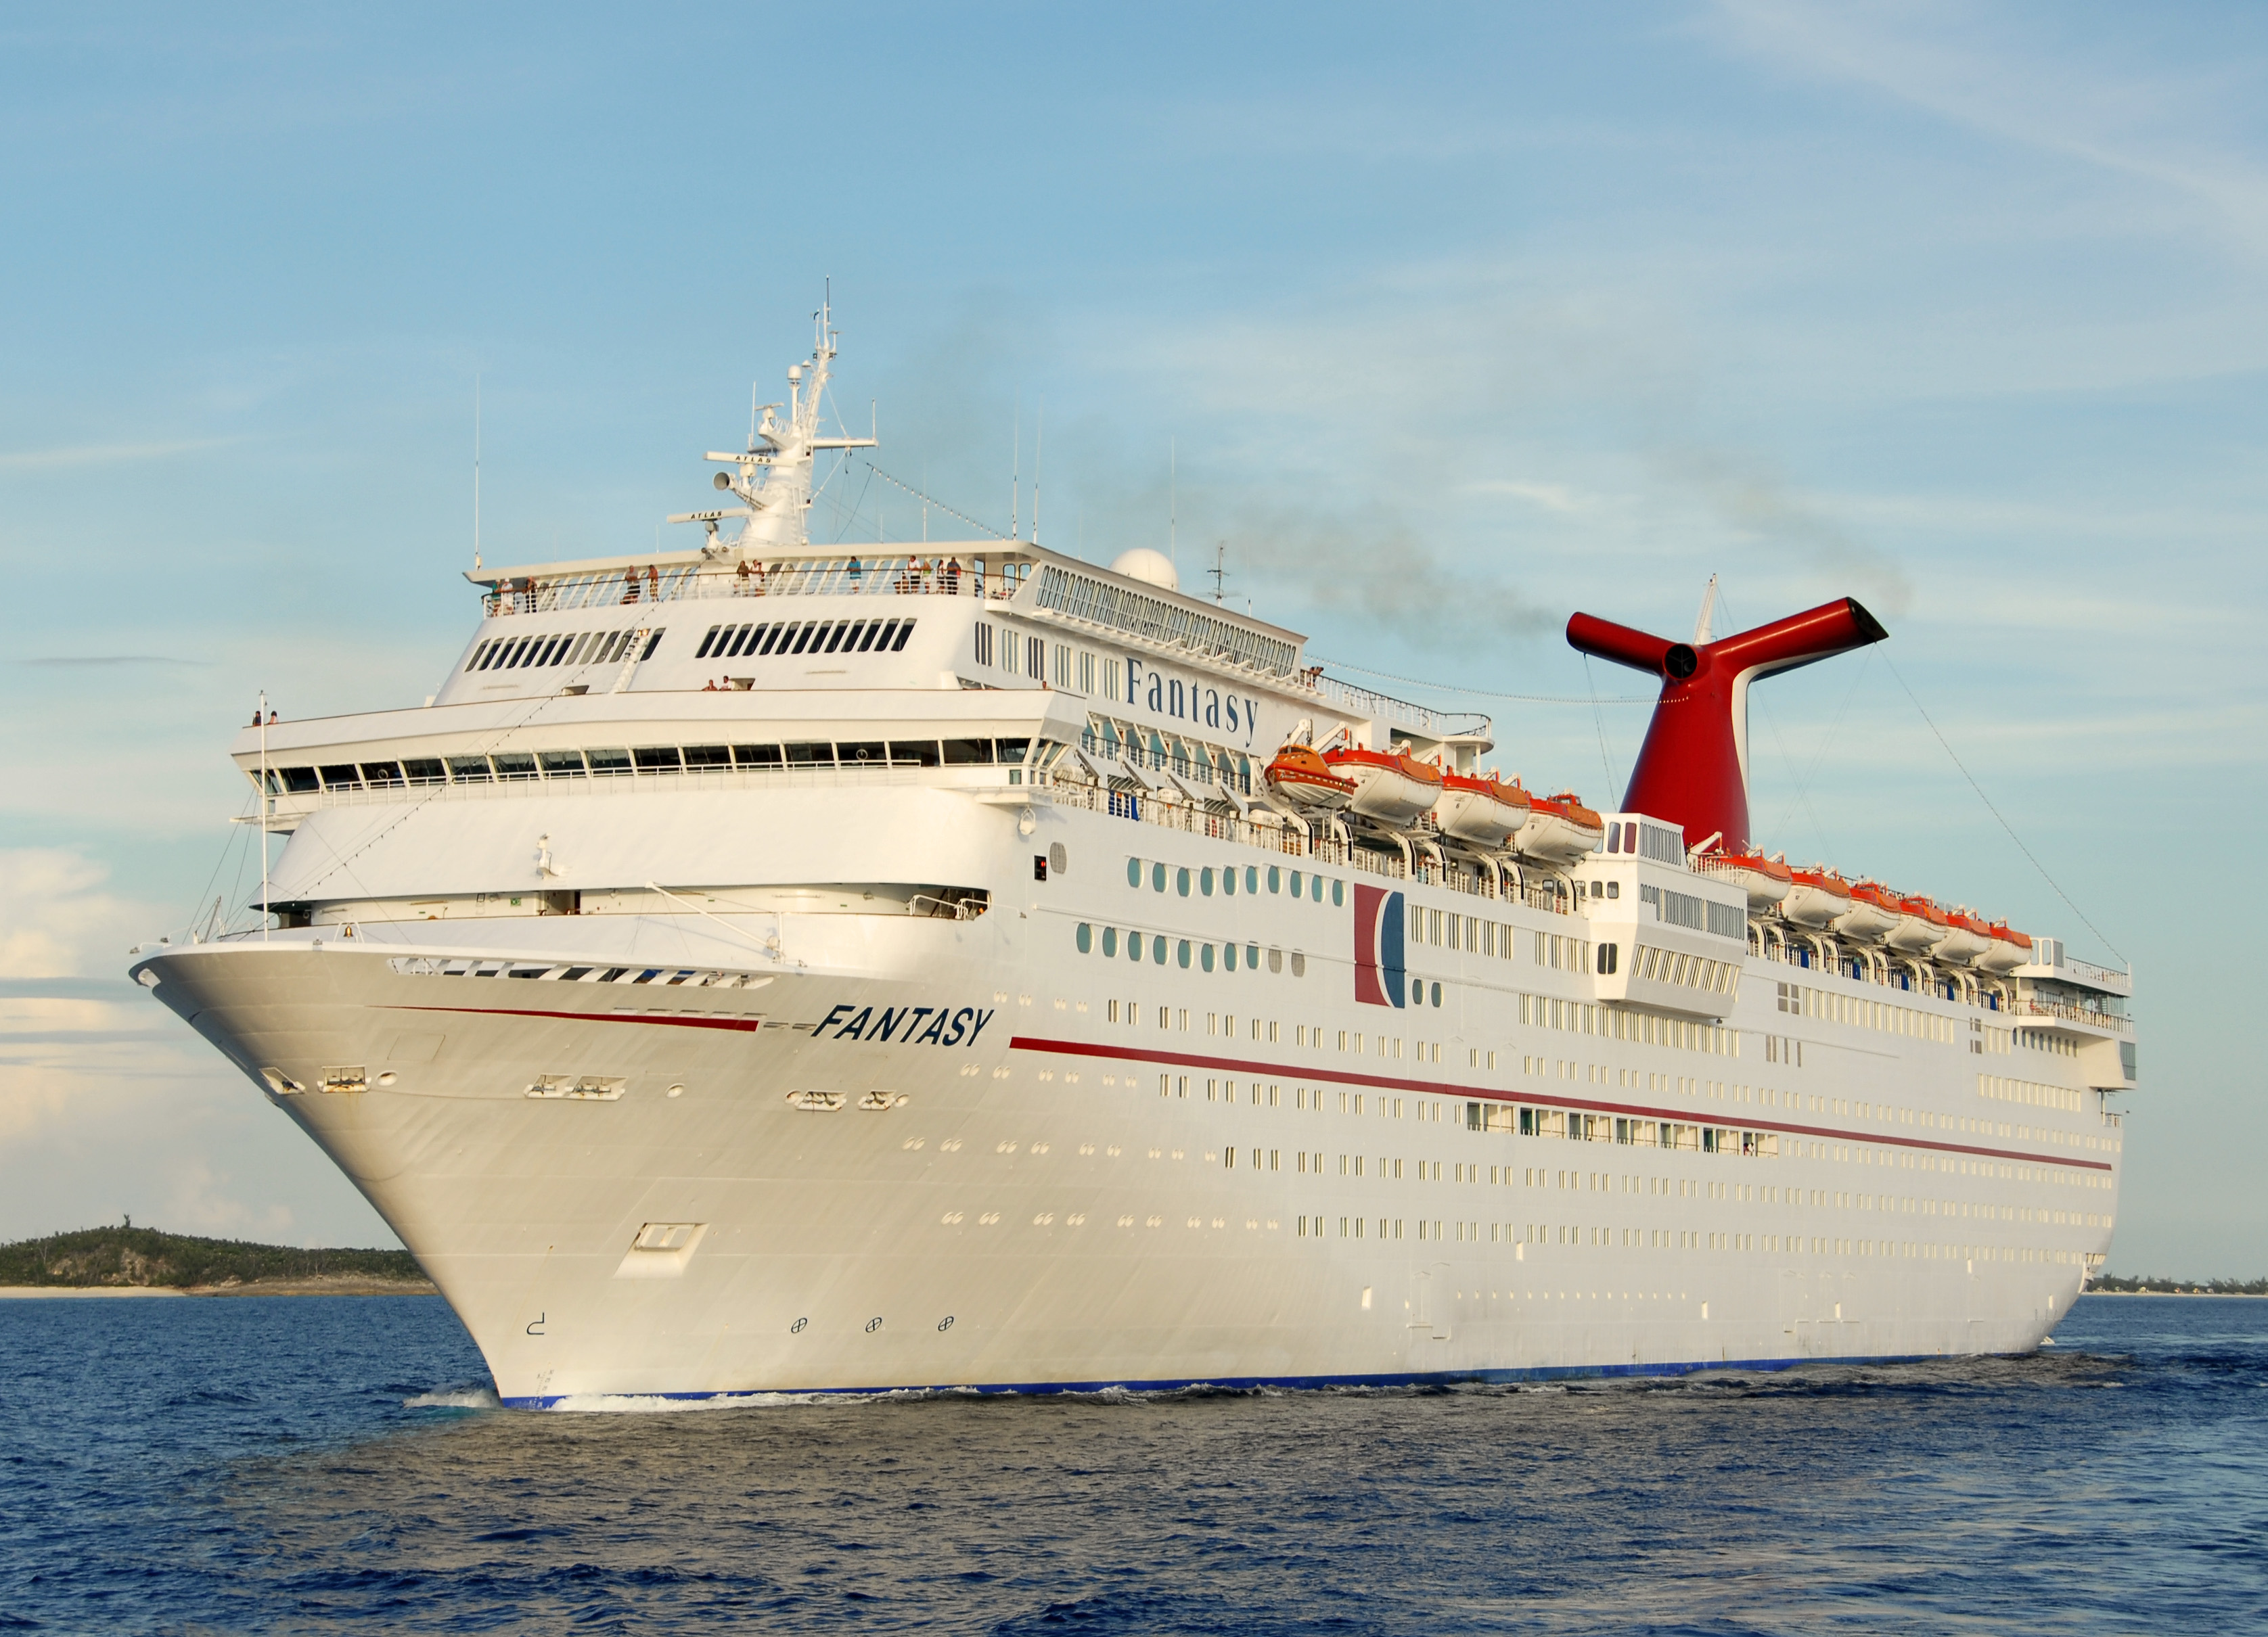 Carnival Cruise Line News - Cruise ships out of charleston